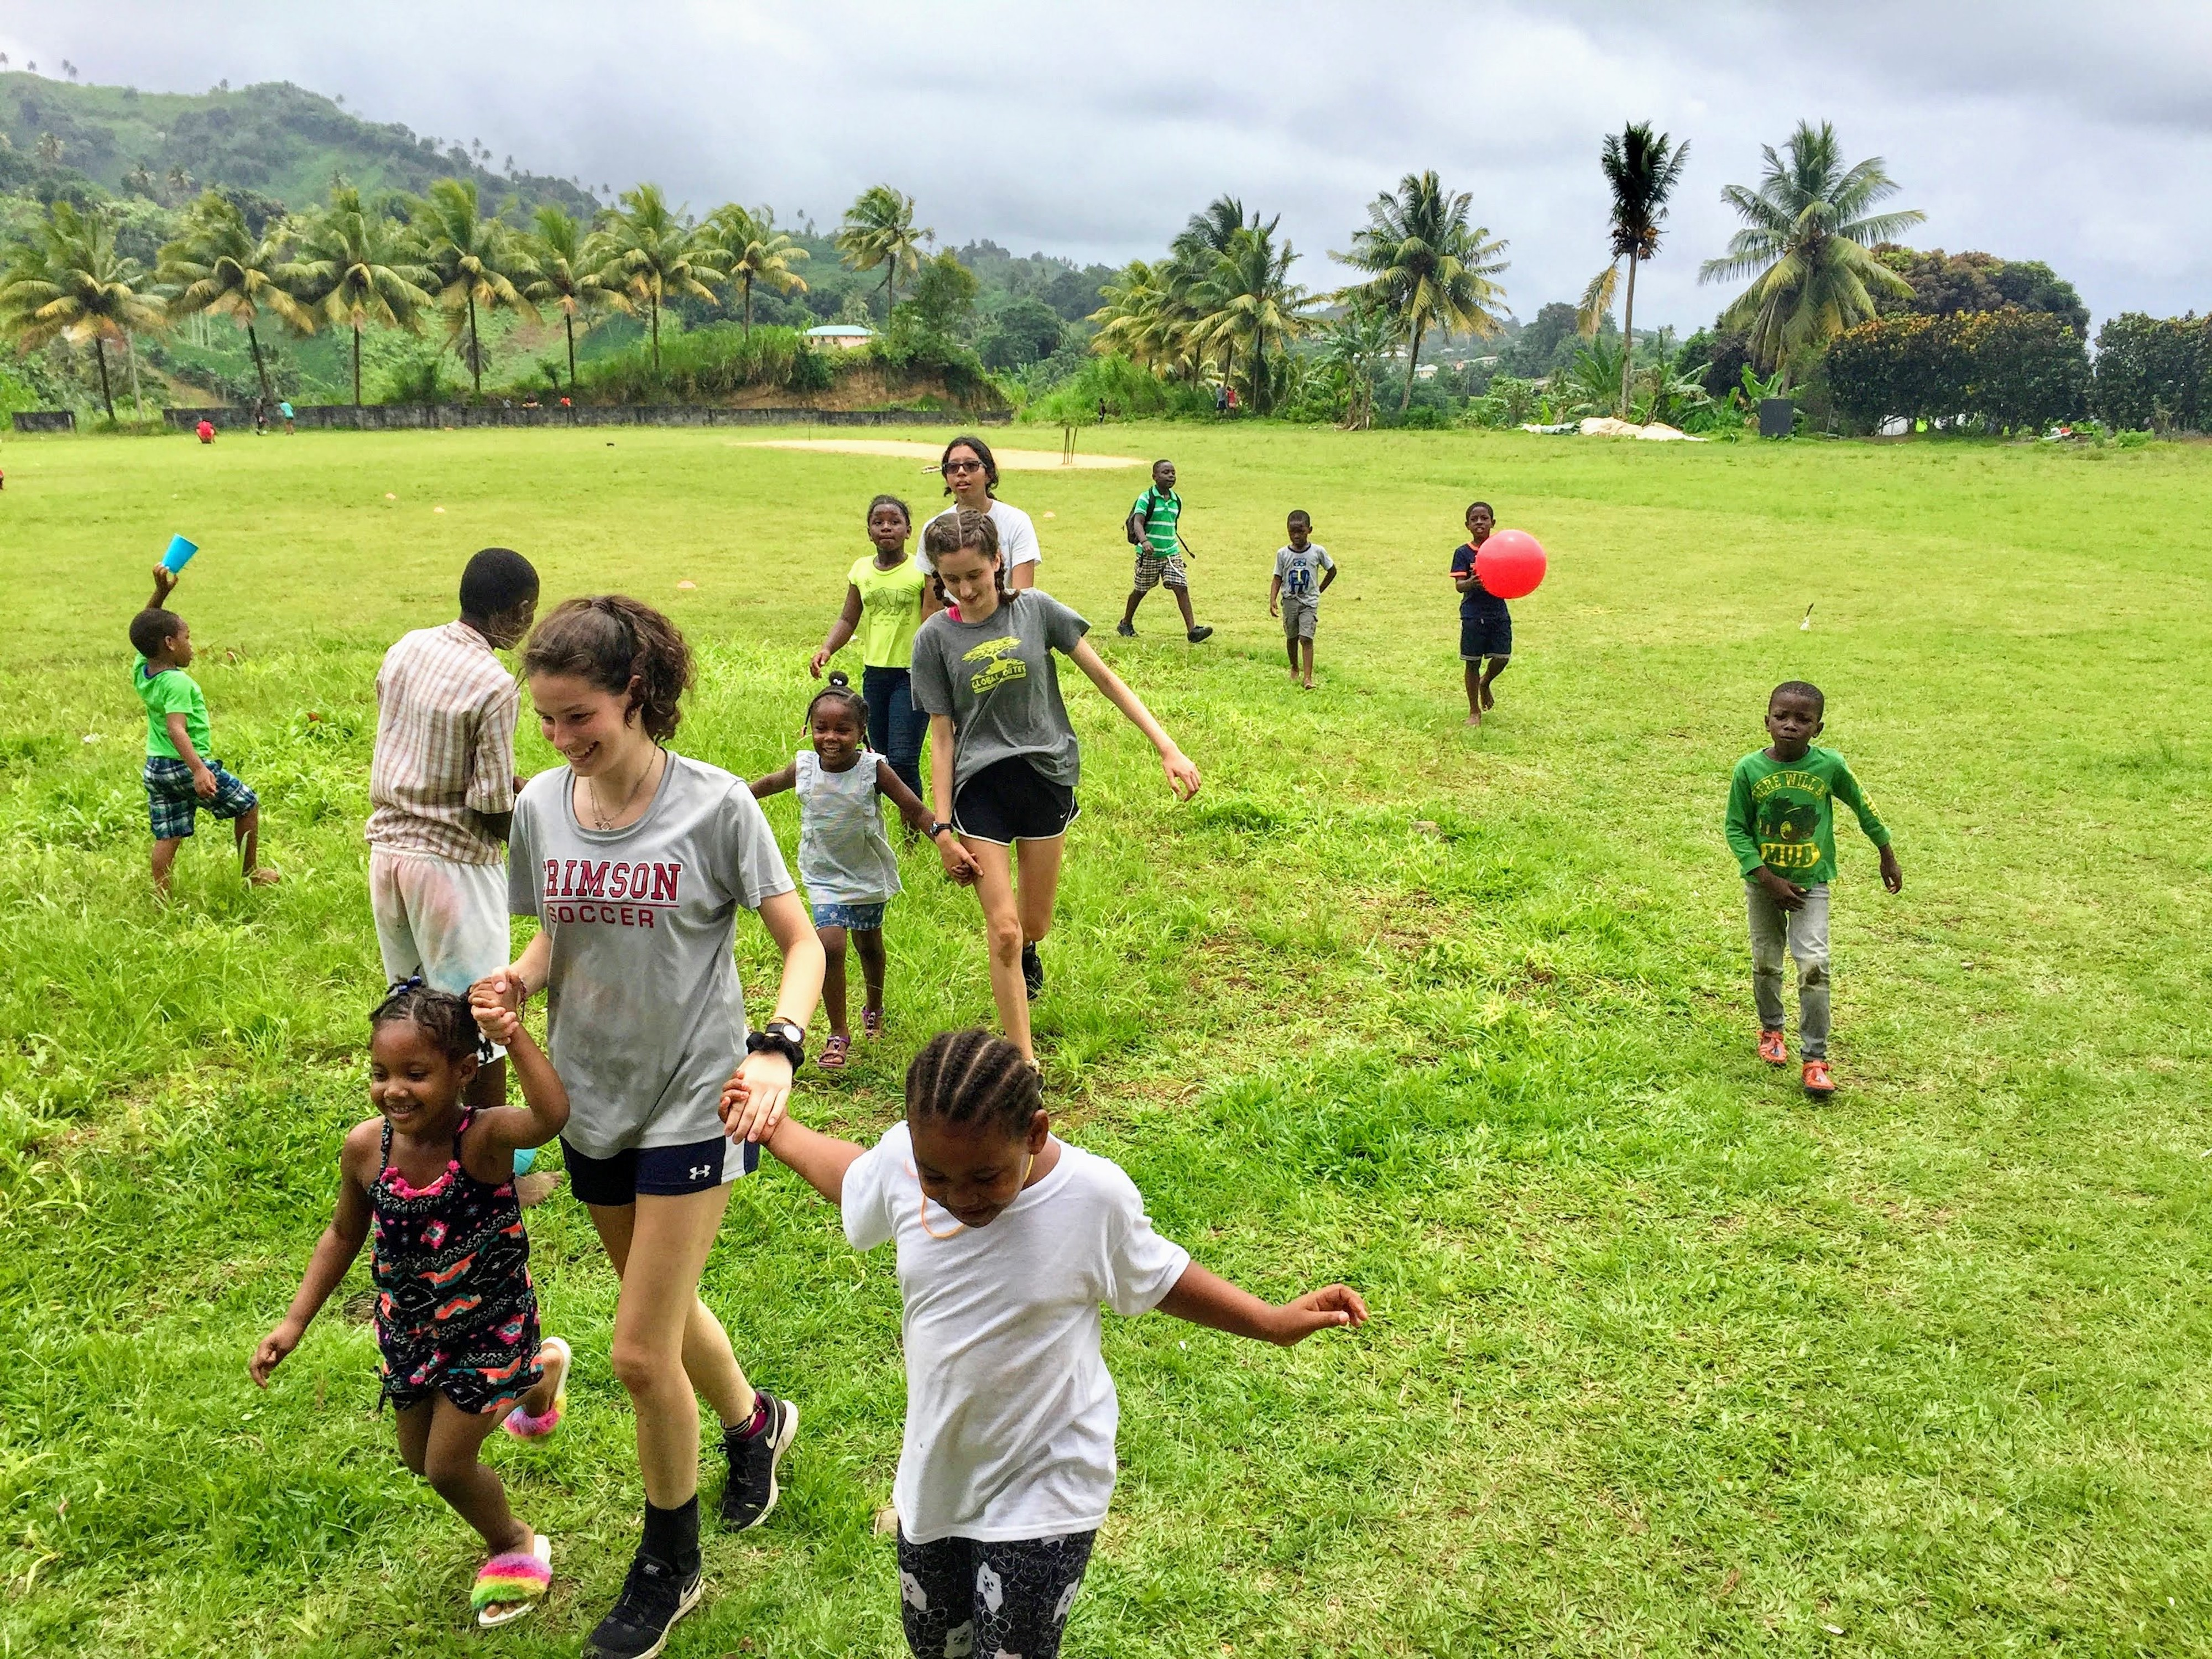 Summer Program - Health and Well Being | Global Routes: High School Summer Programs